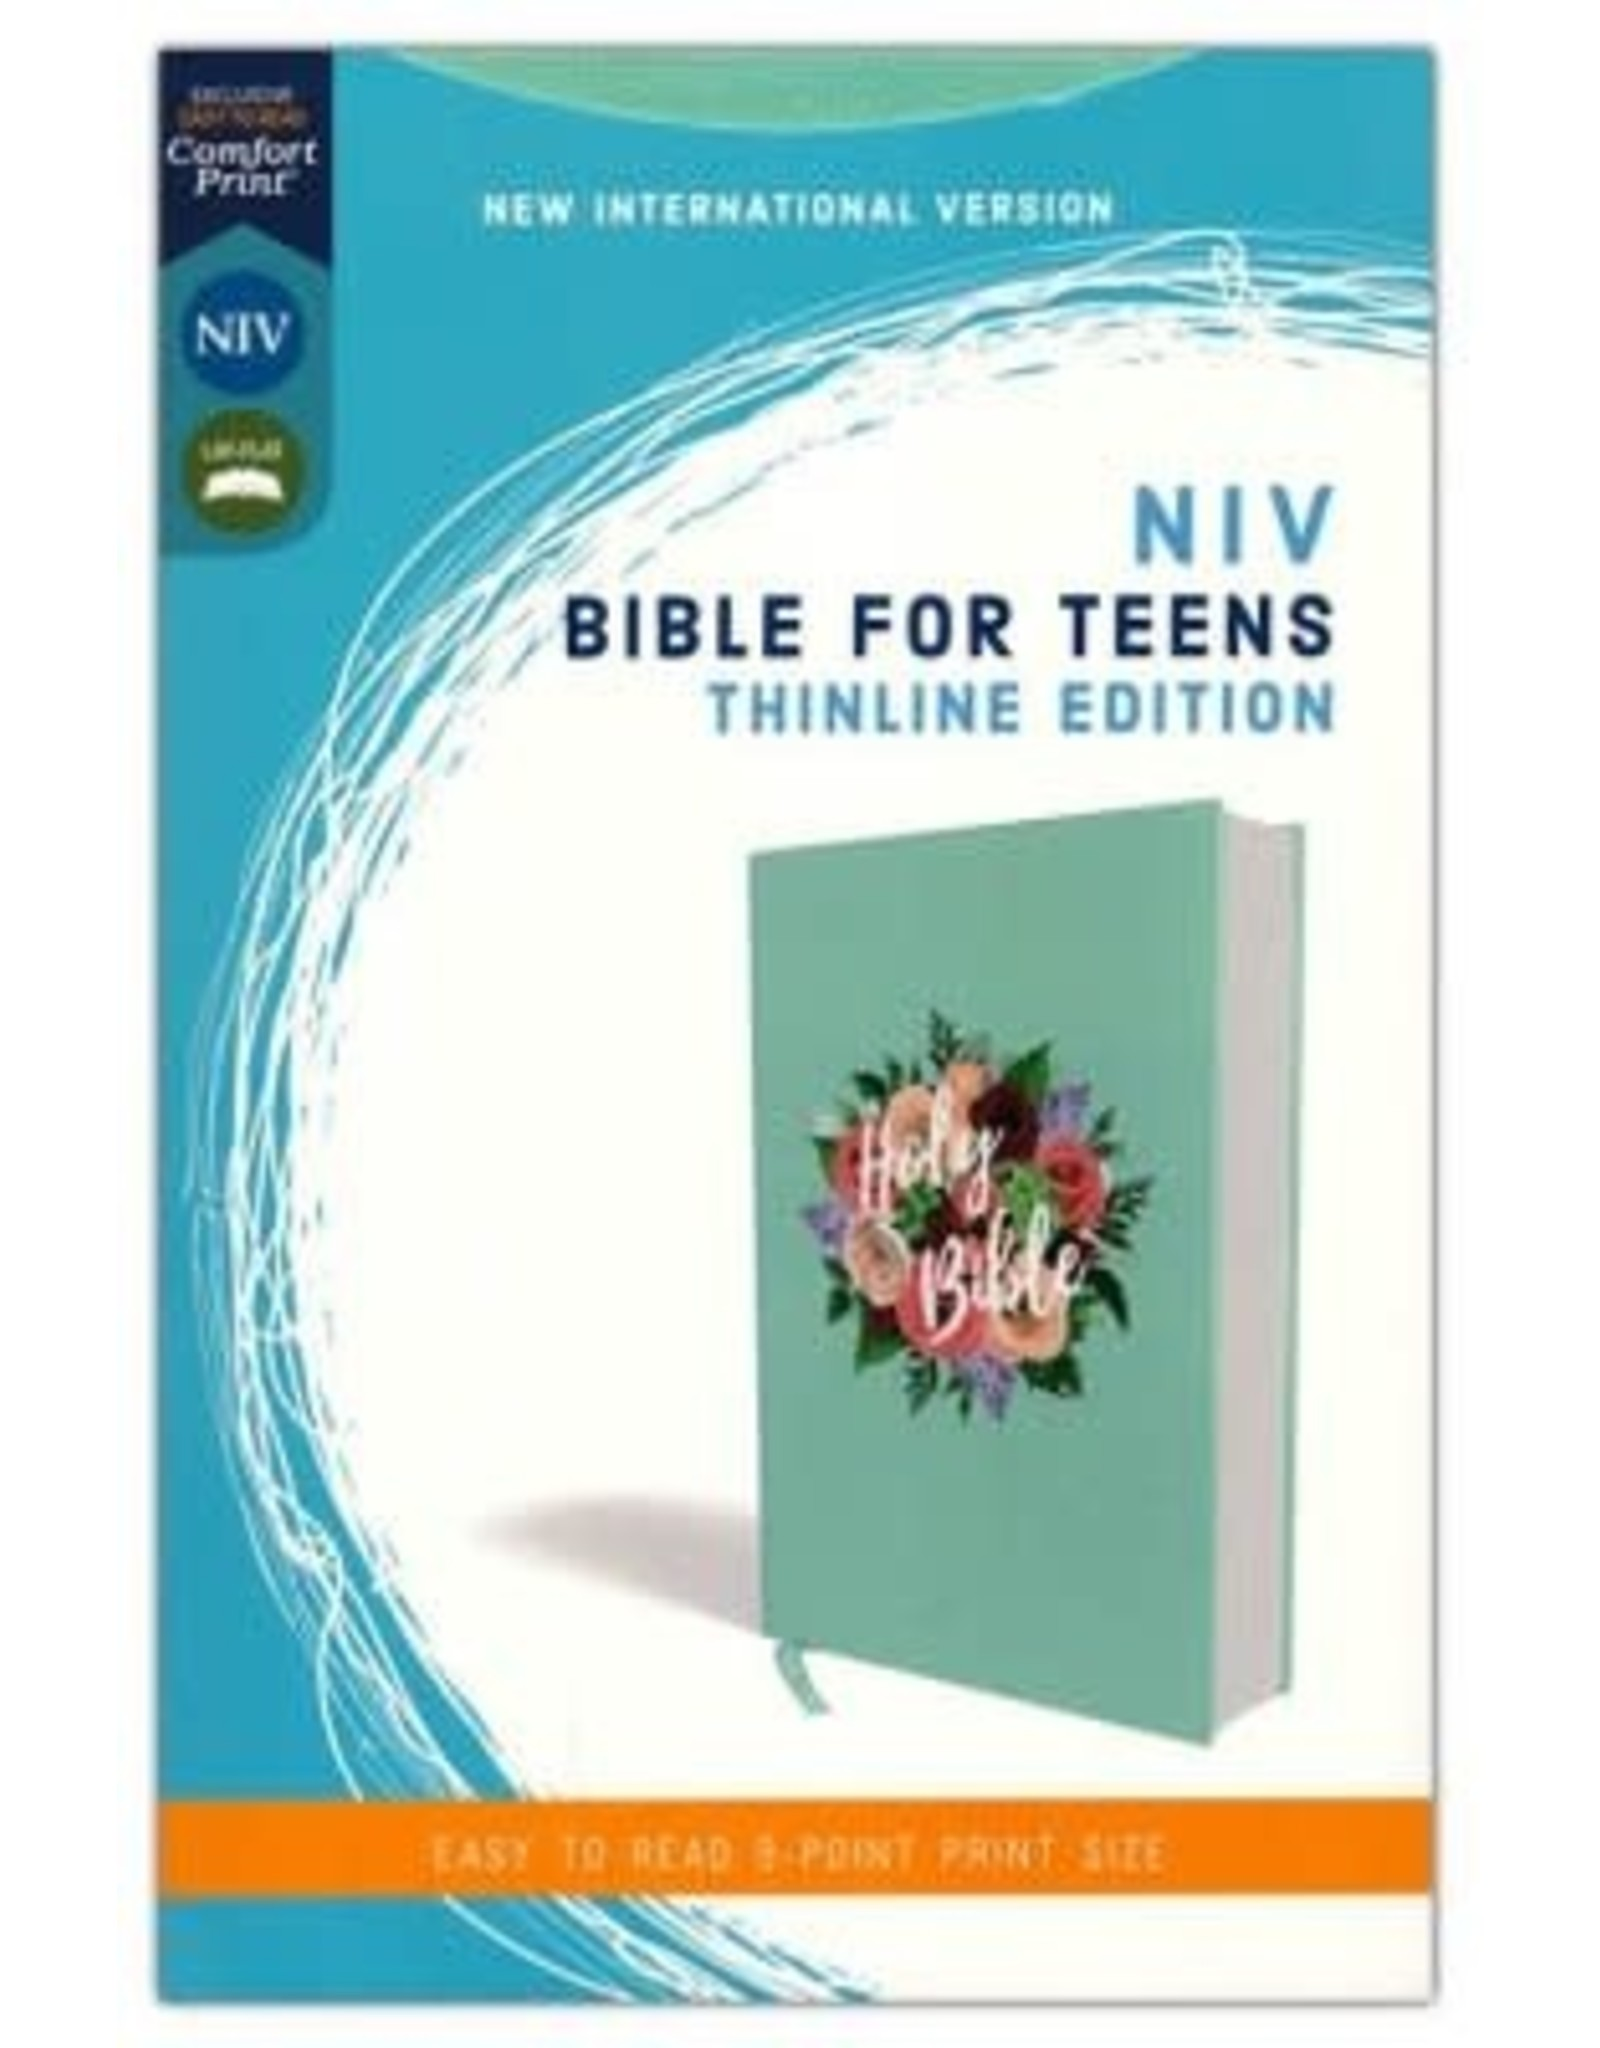 NIV Floral Bible for Teens